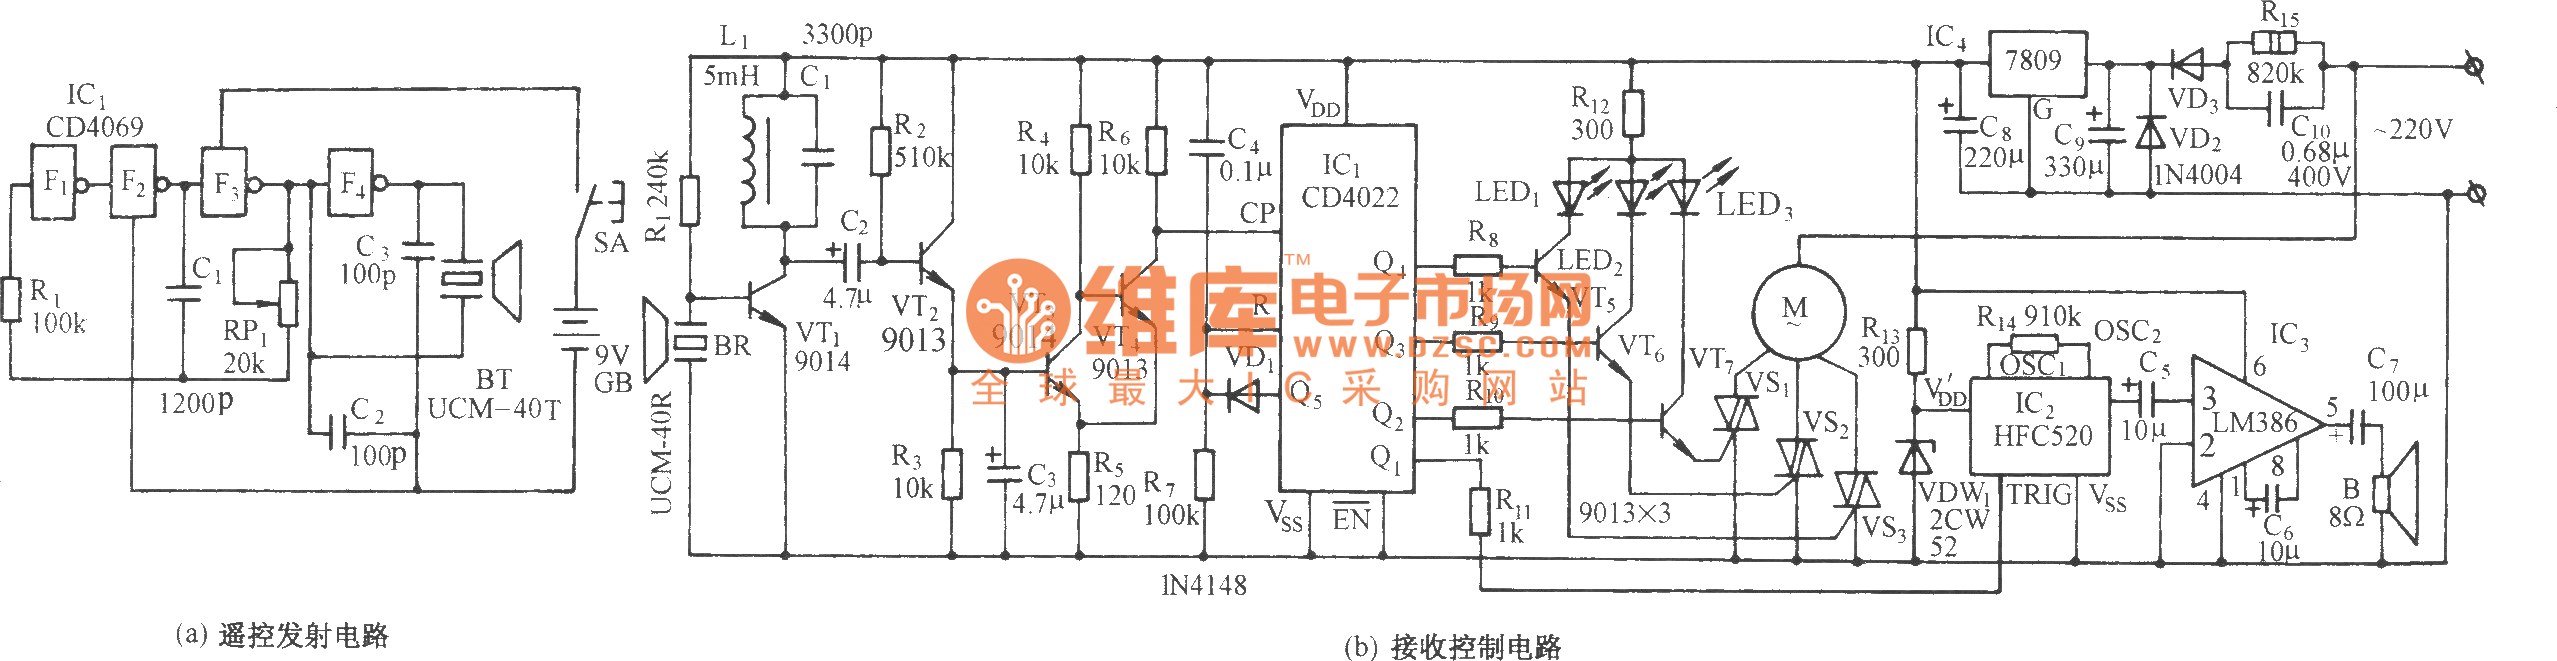 Ultrasonic Remote Control Fan Variable Speed With Sound